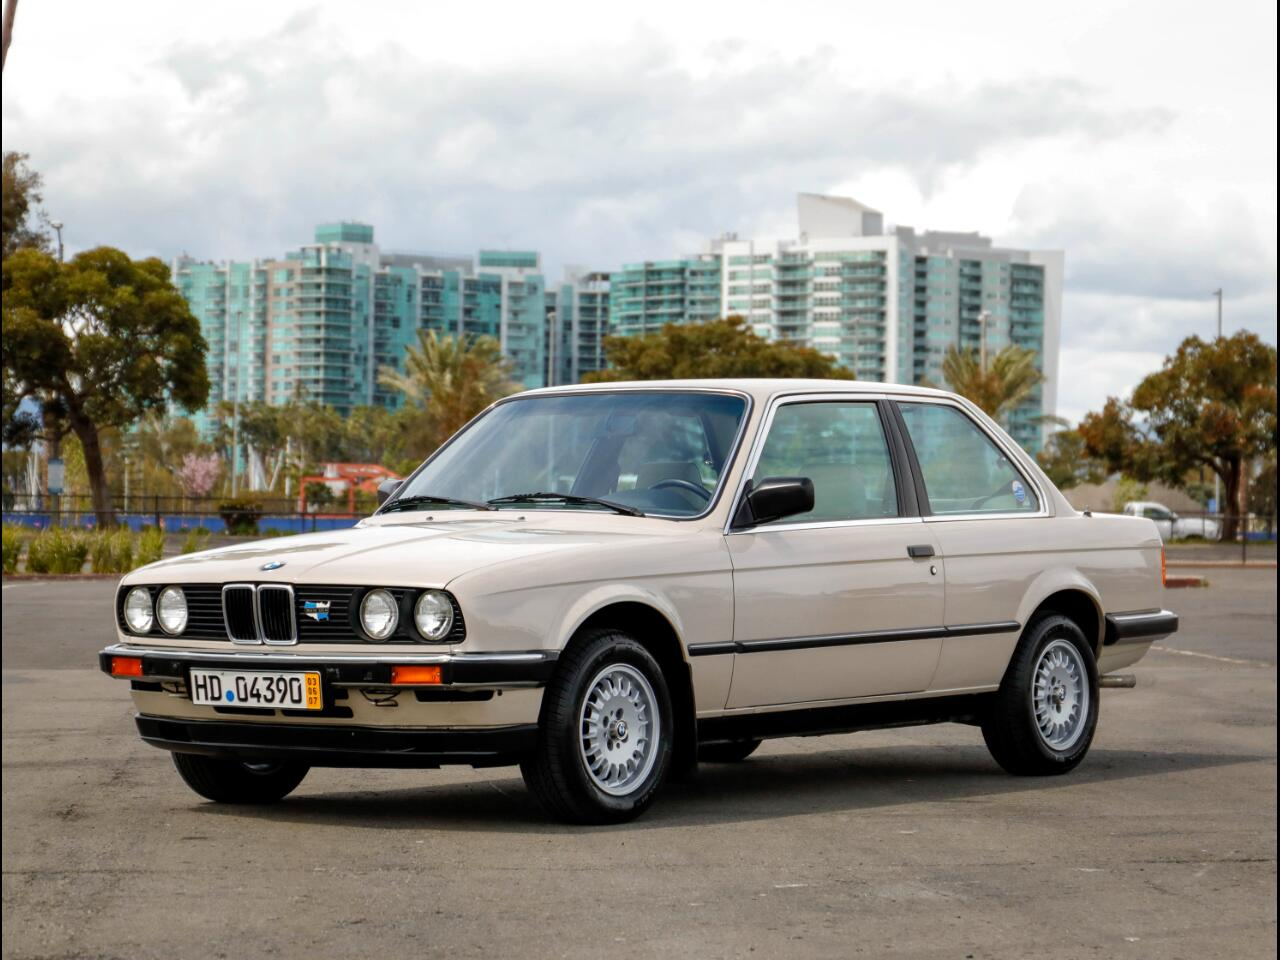 1985 BMW 325e 2 Door Coupe